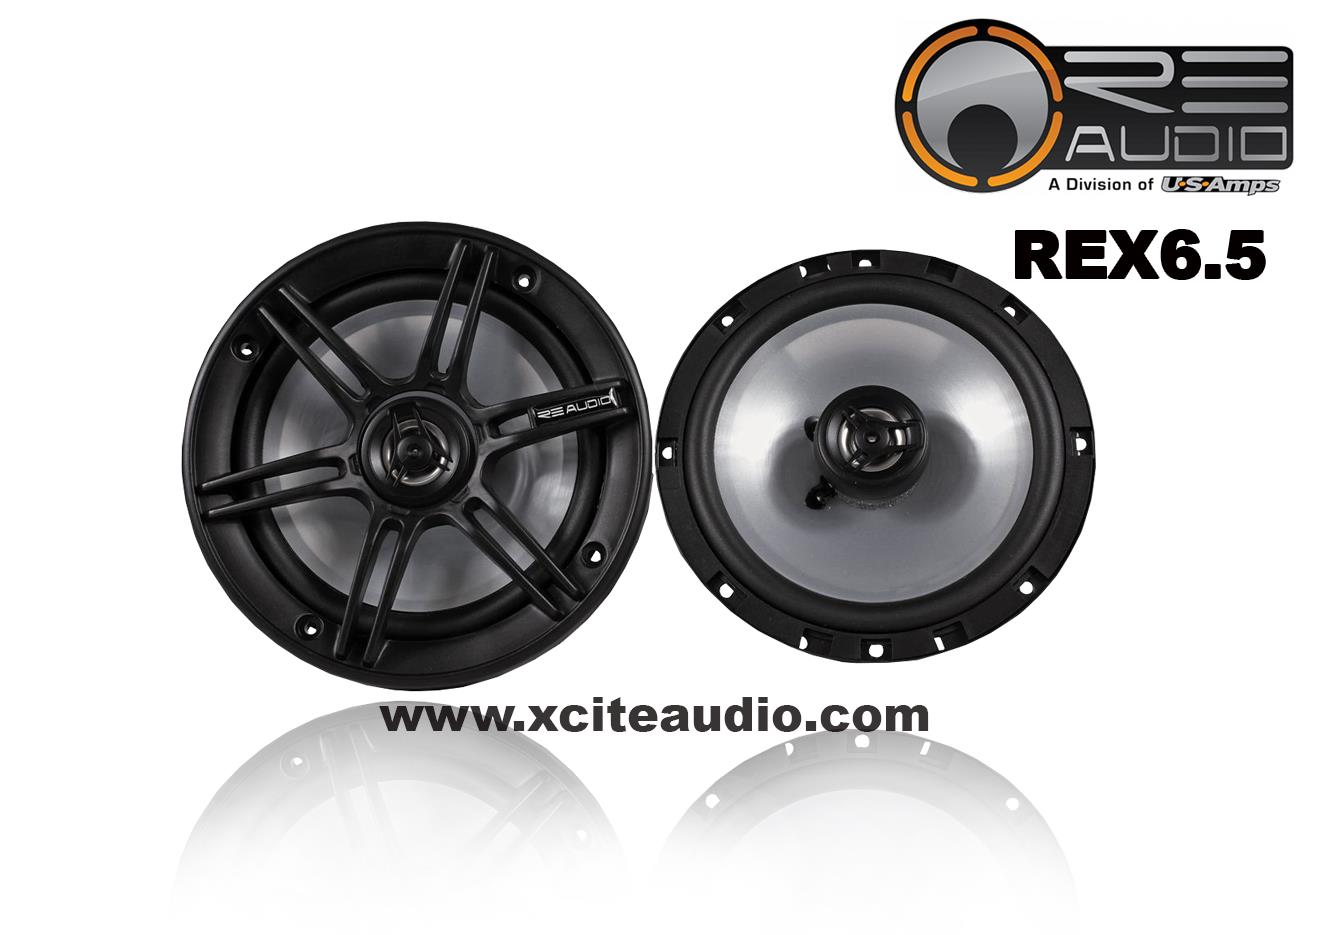 RE Audio REX6.5 6.5inch 125W 2-Way Coaxial Car Speakers